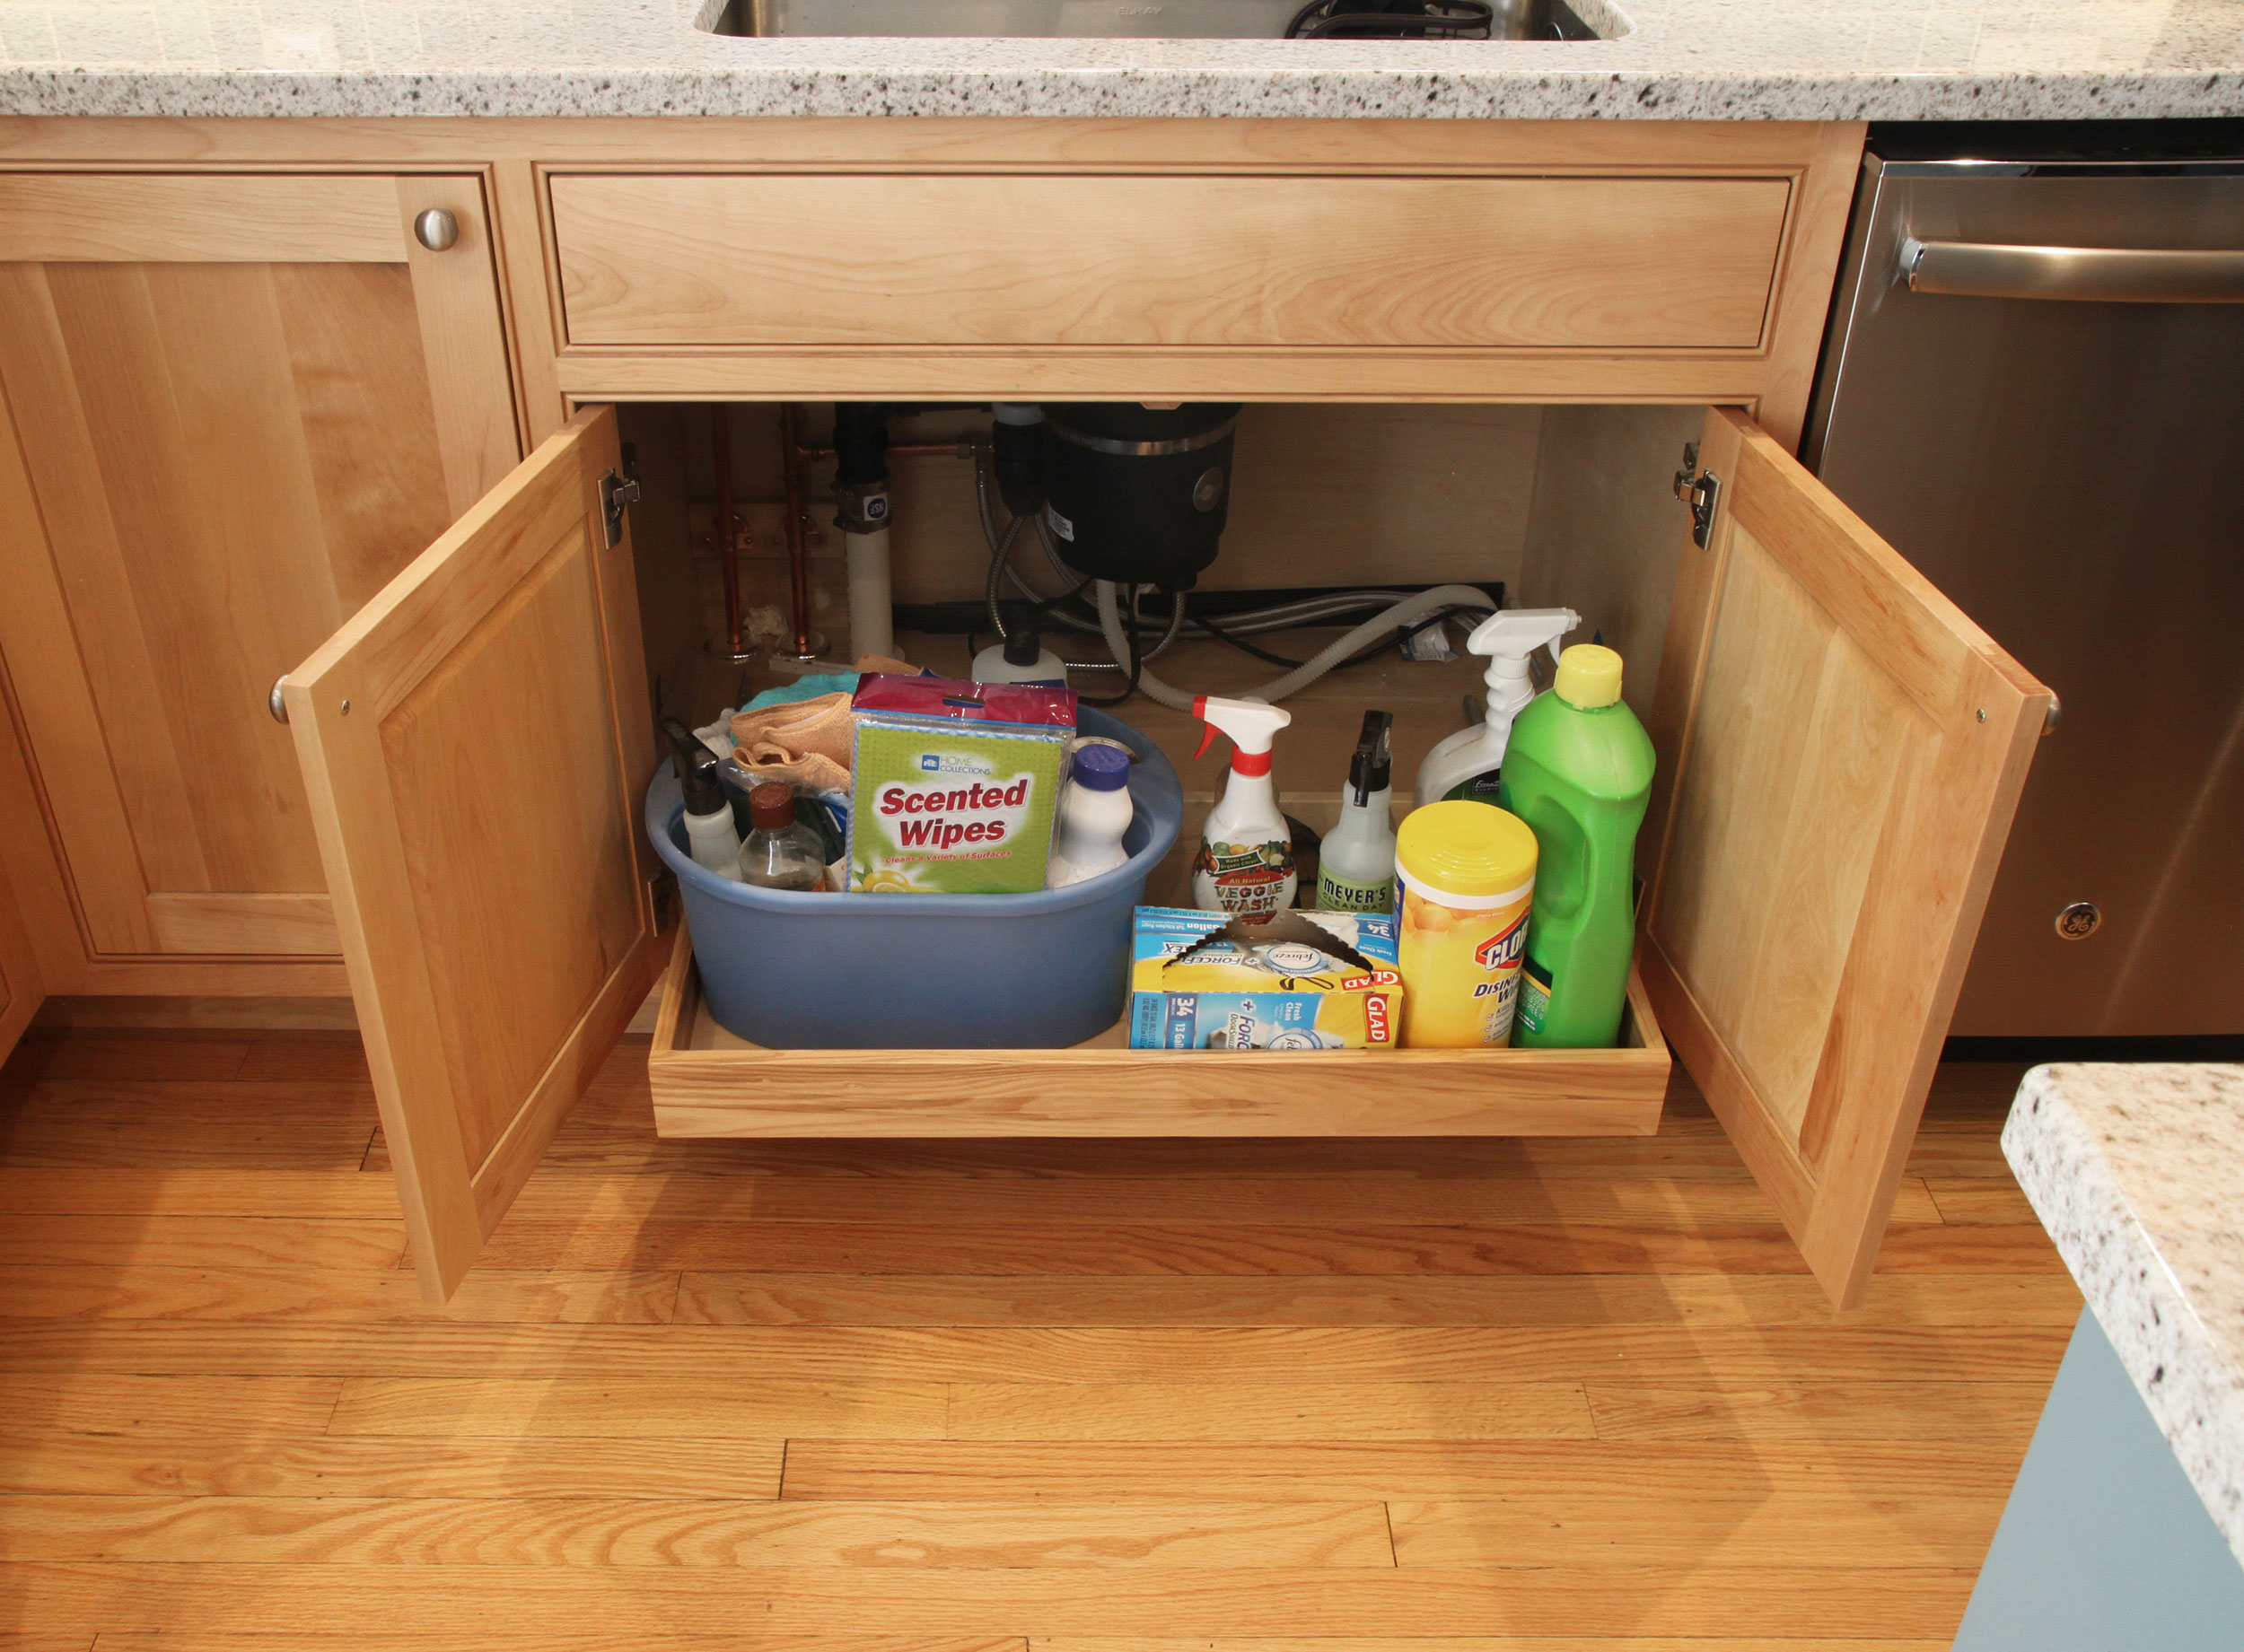 Pullout gives access to cleaning supplies